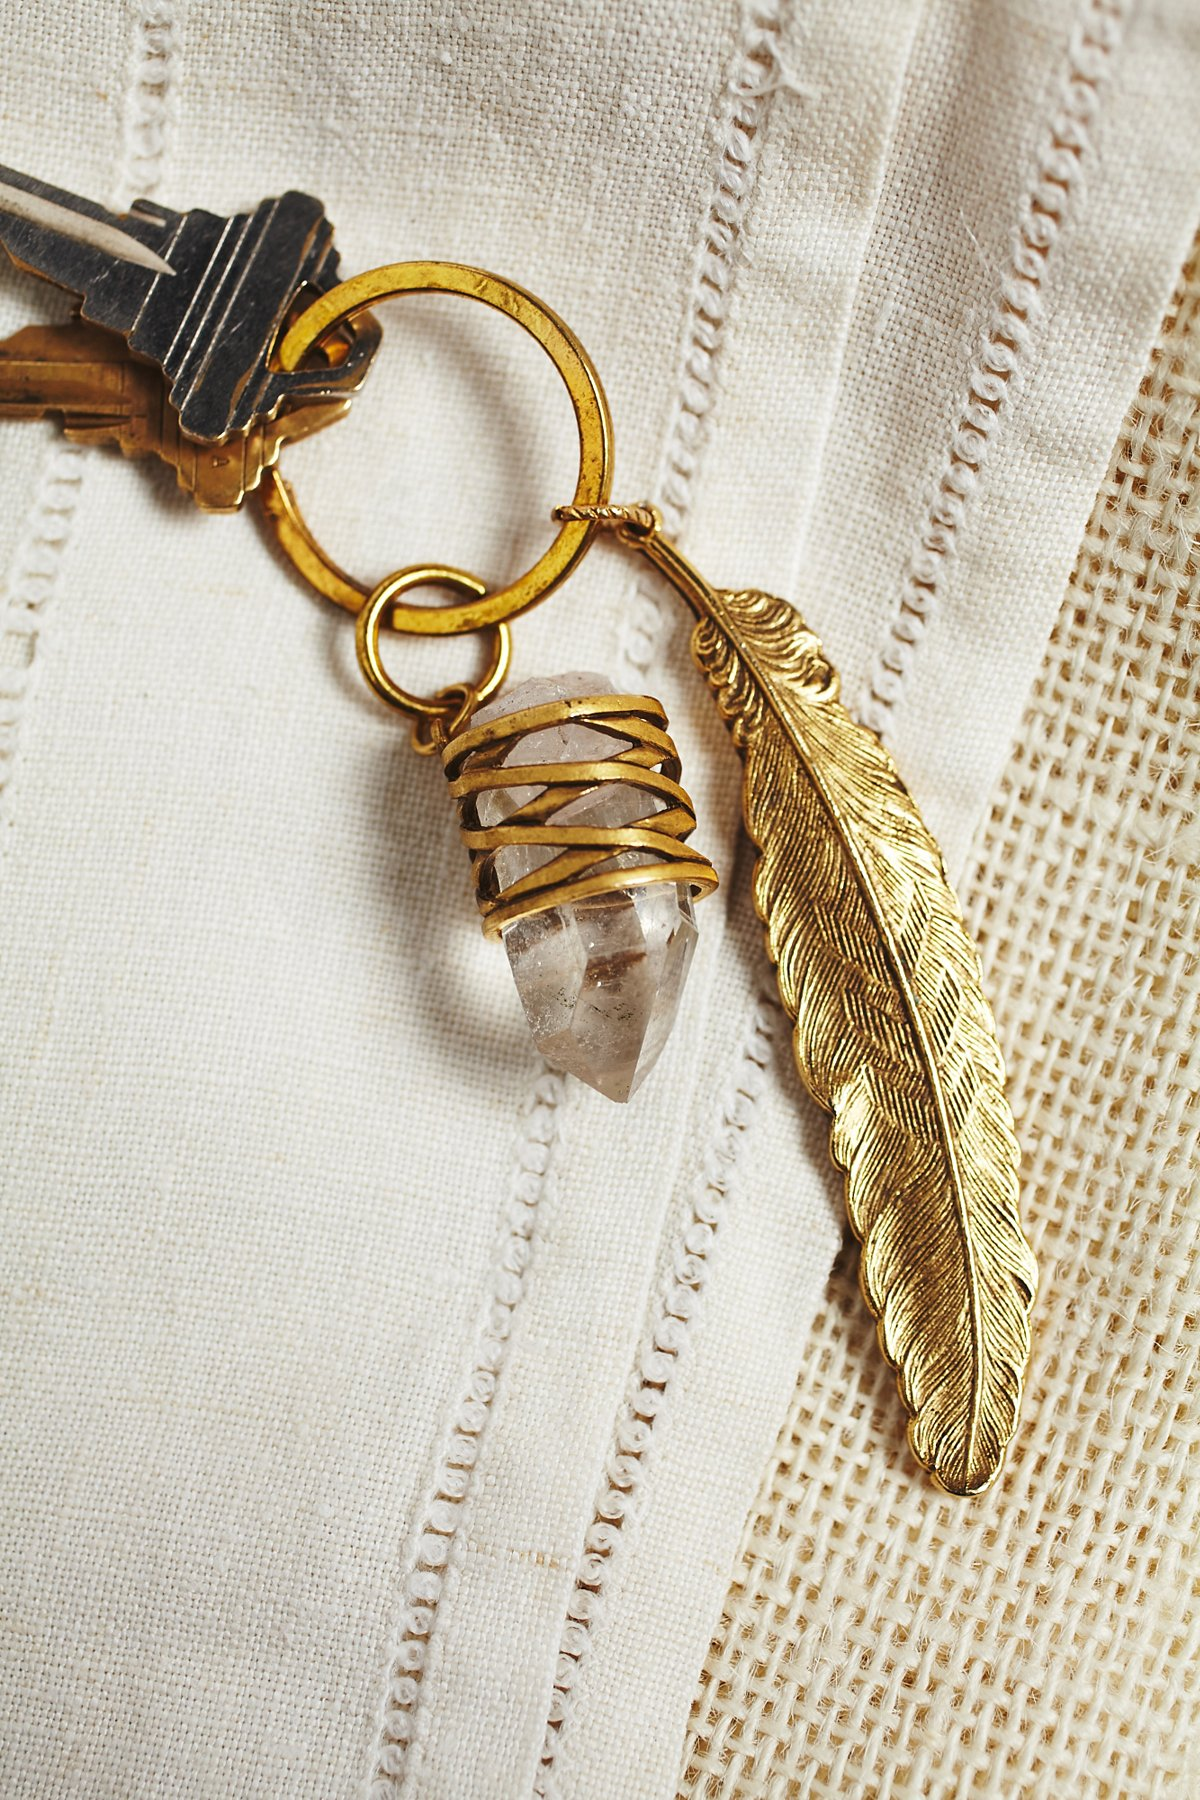 Quill Key Ring